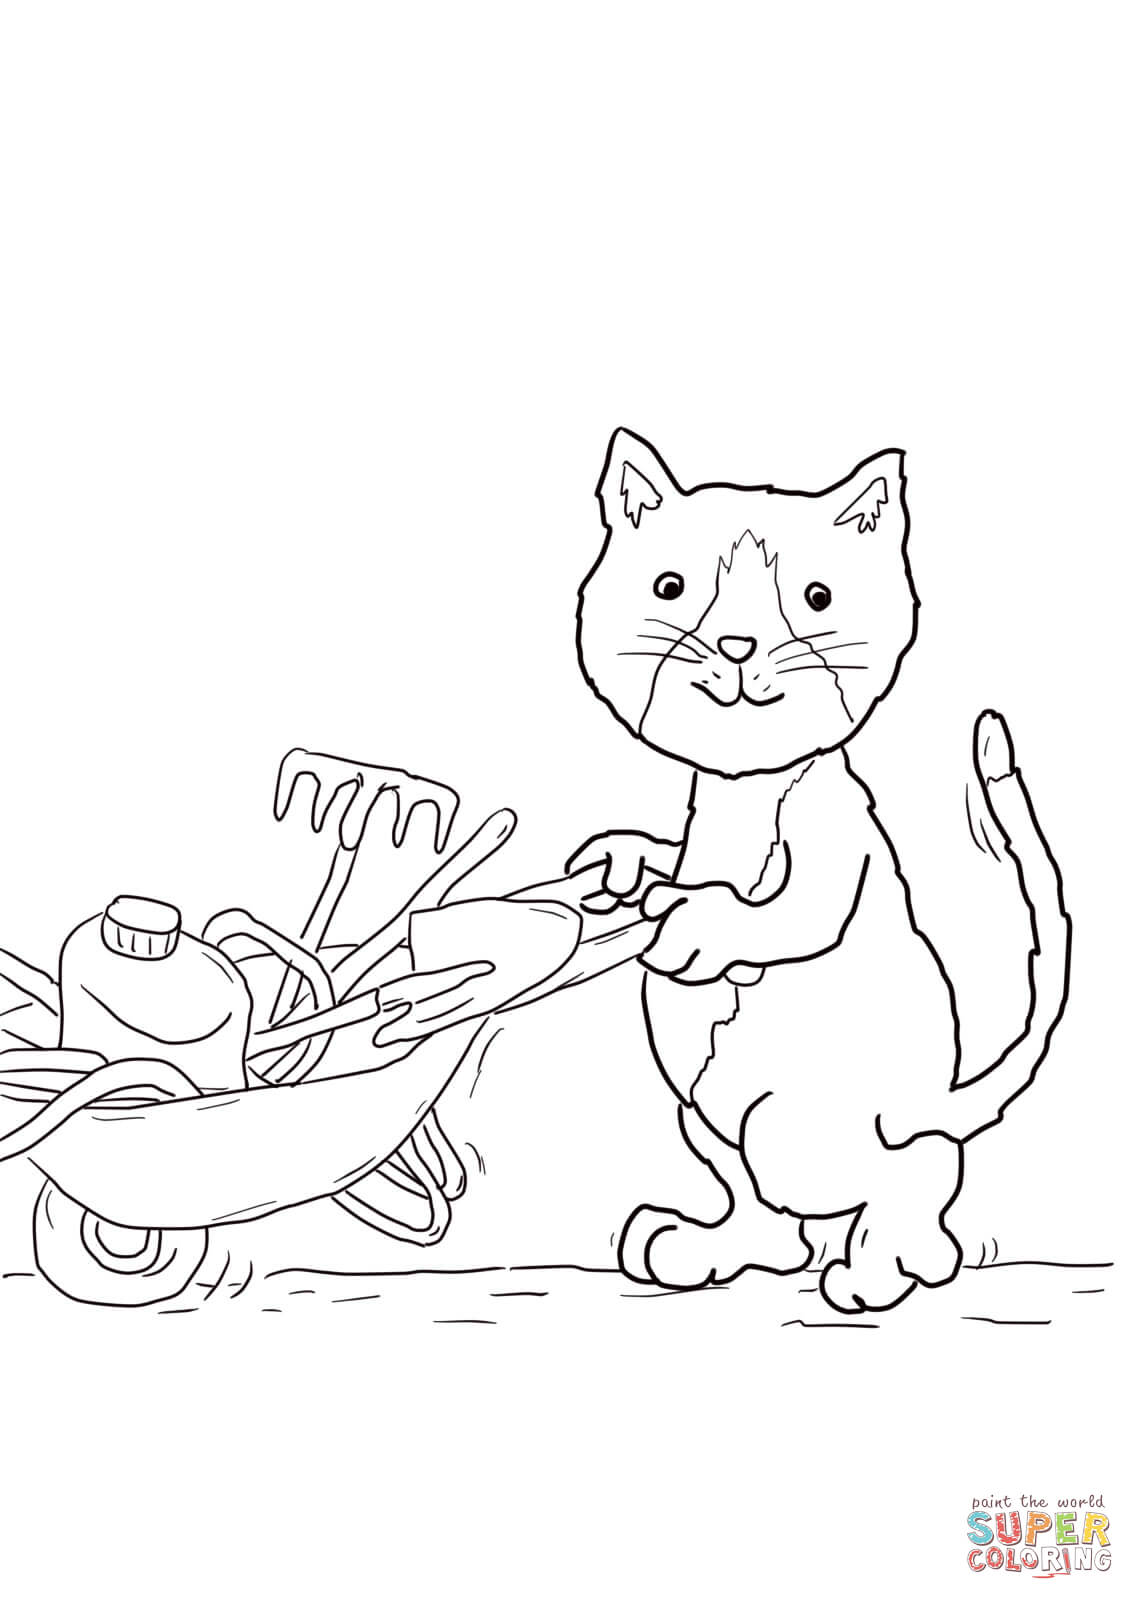 Coloring Pages For Kids Parts Of Face Ng T Ti Ng Anh